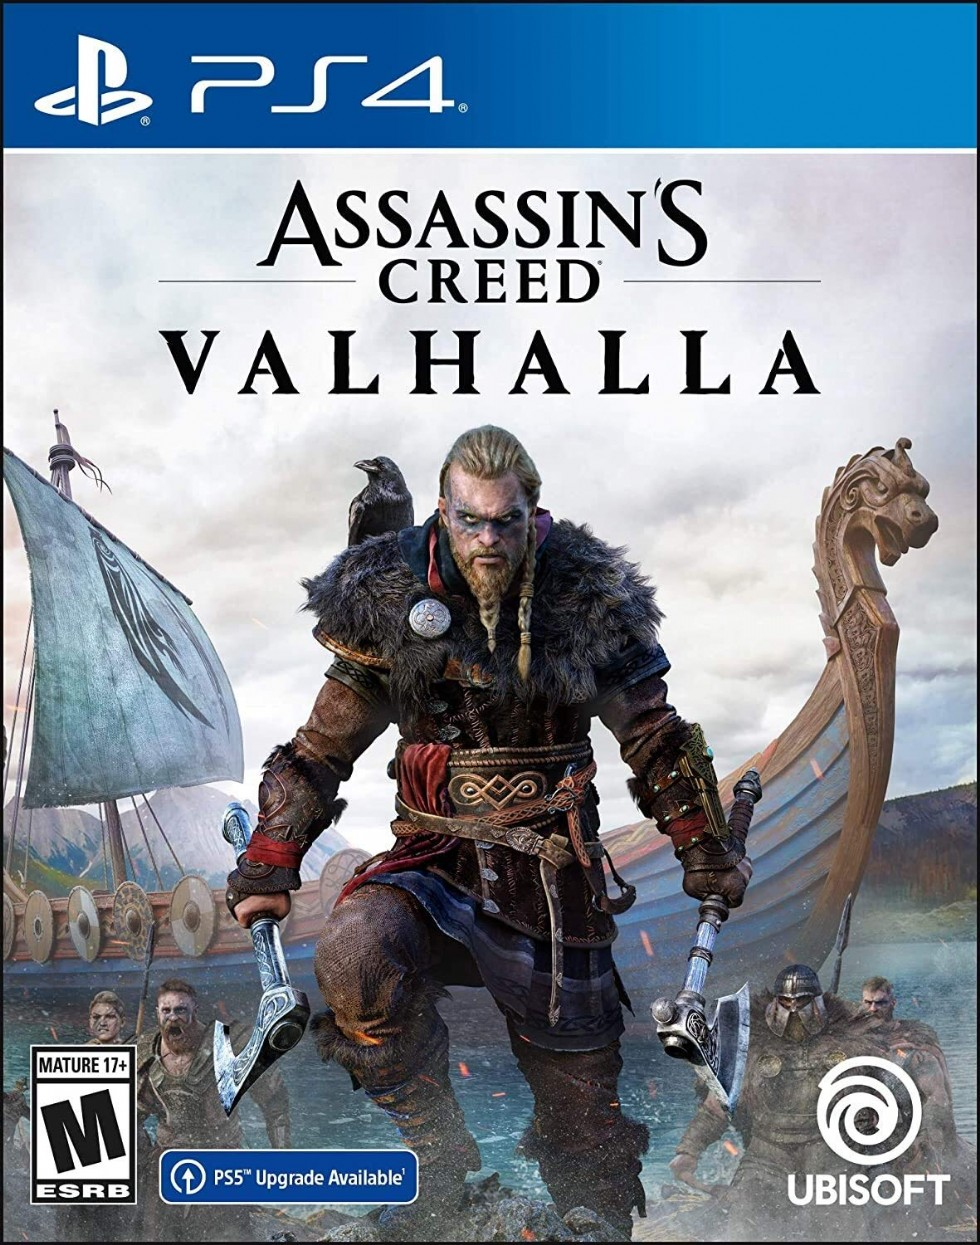 Assassin's Creed Valhalla Playstation 4 Standard Edition